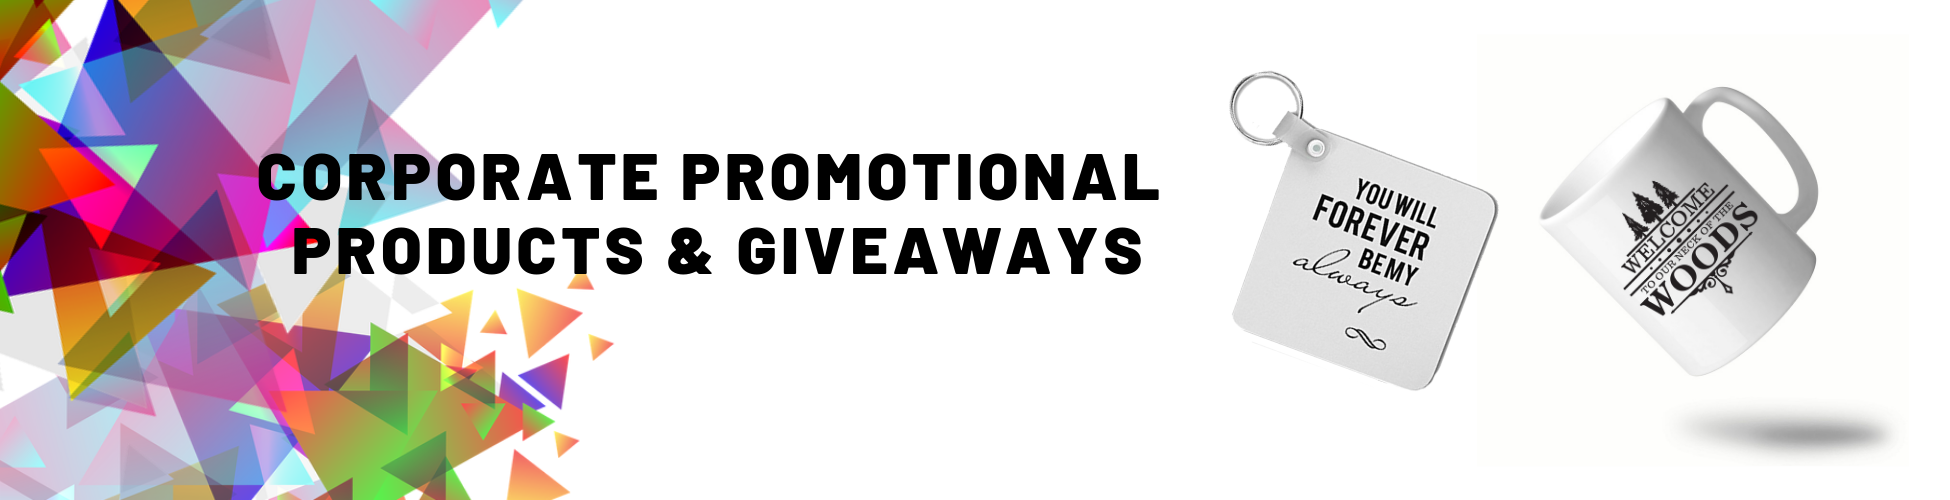 corporate-promotional-products-2.png